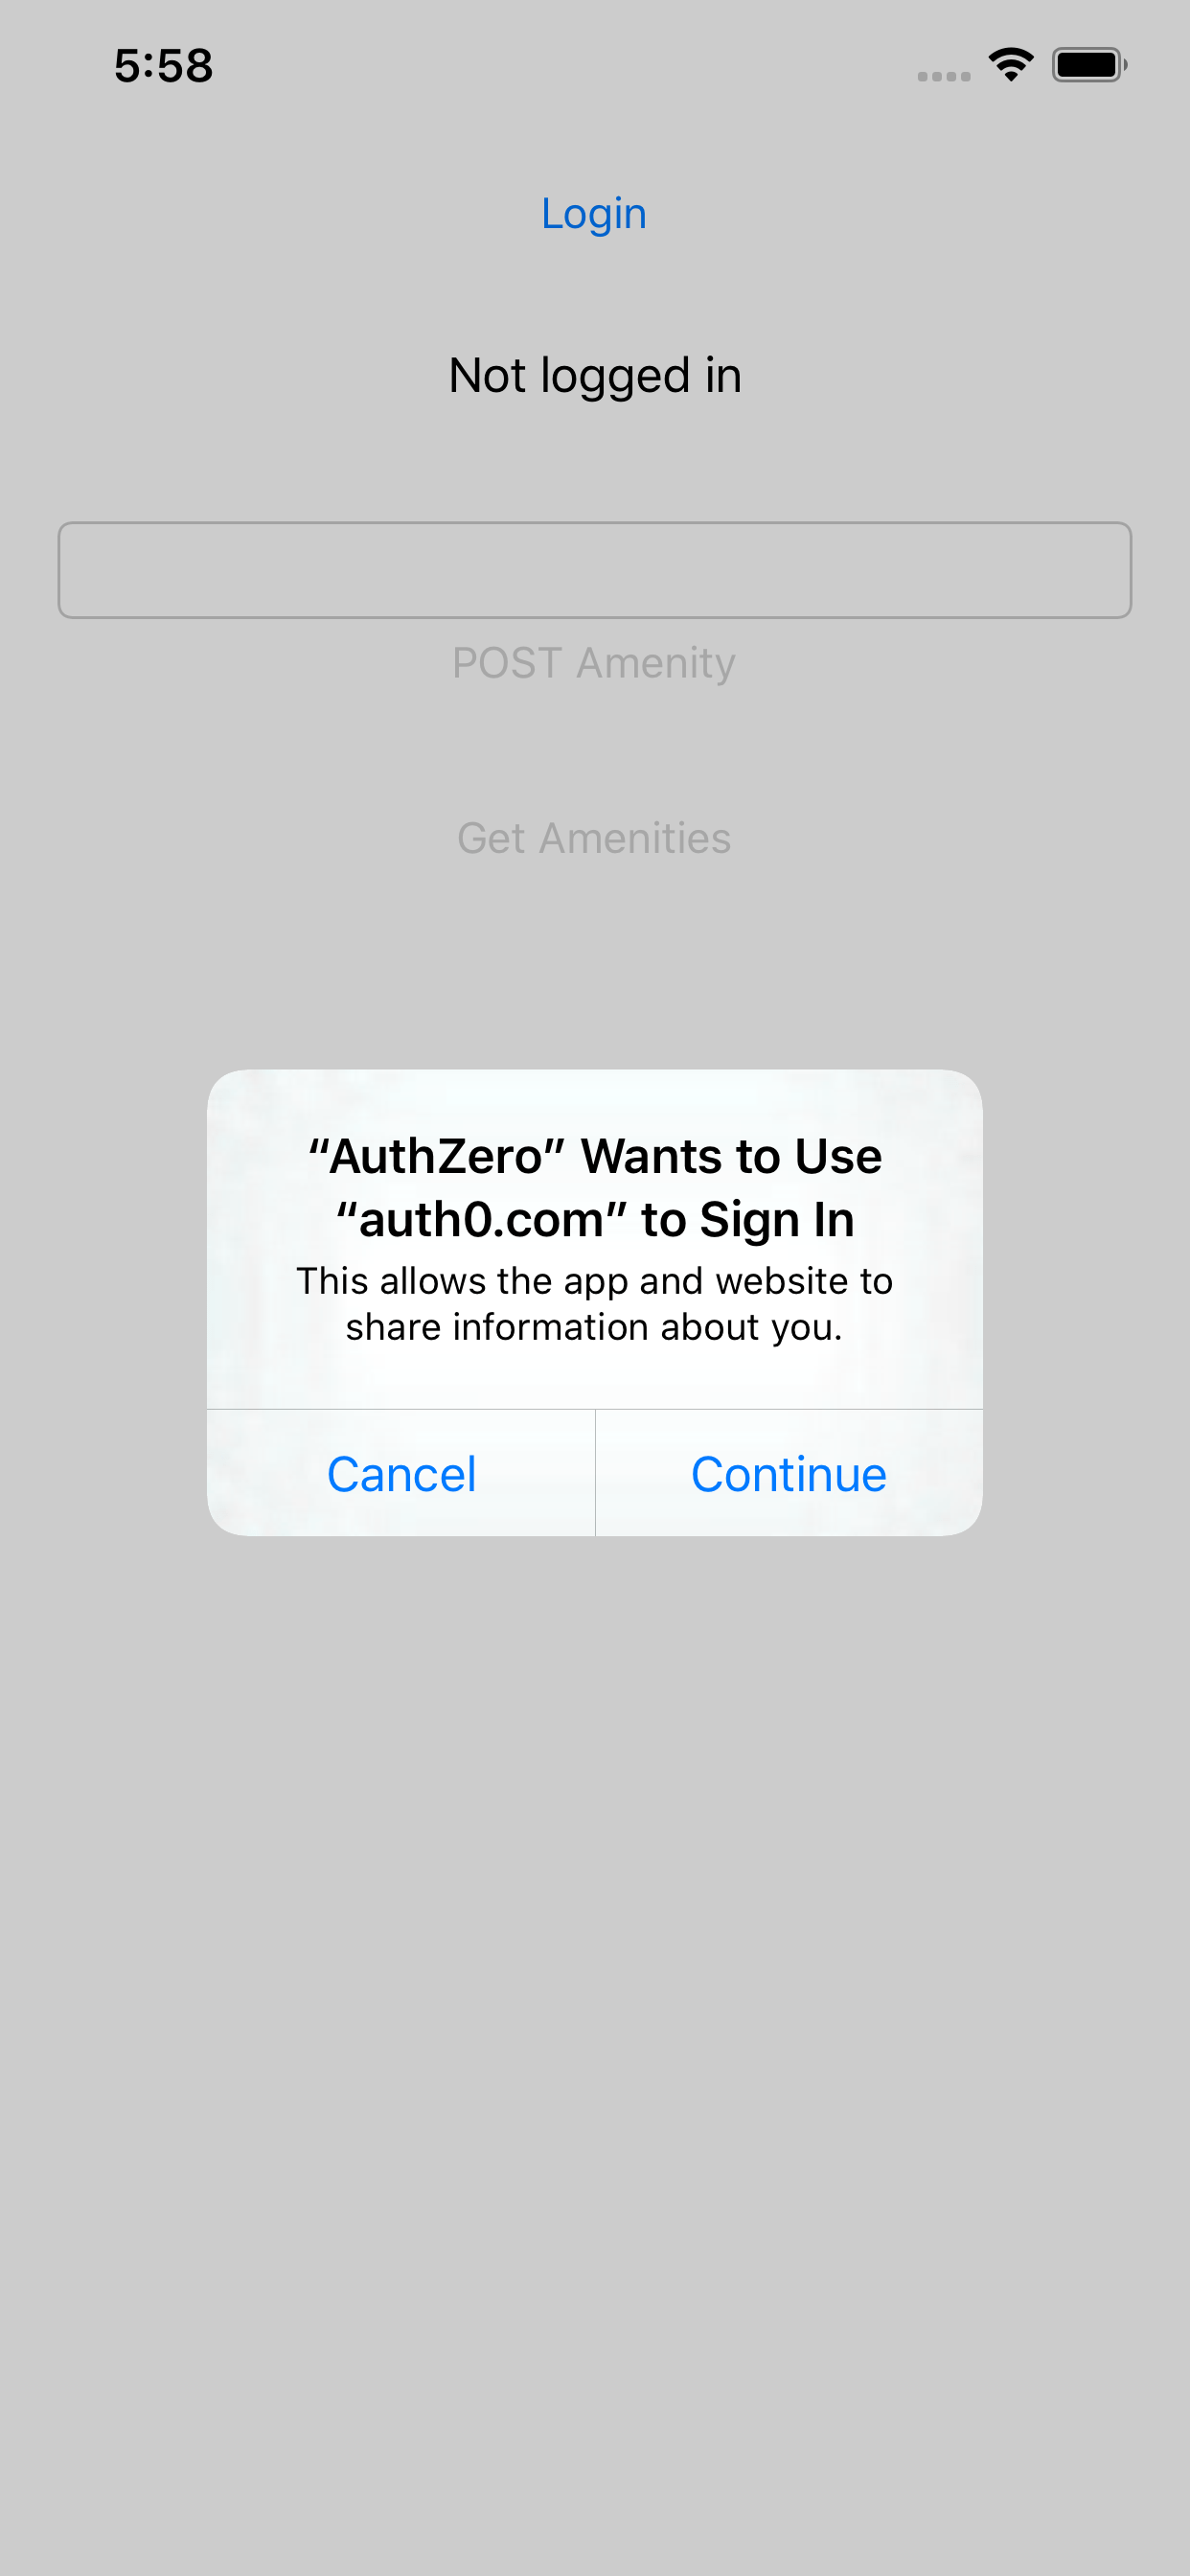 iOS permission prompt for Login